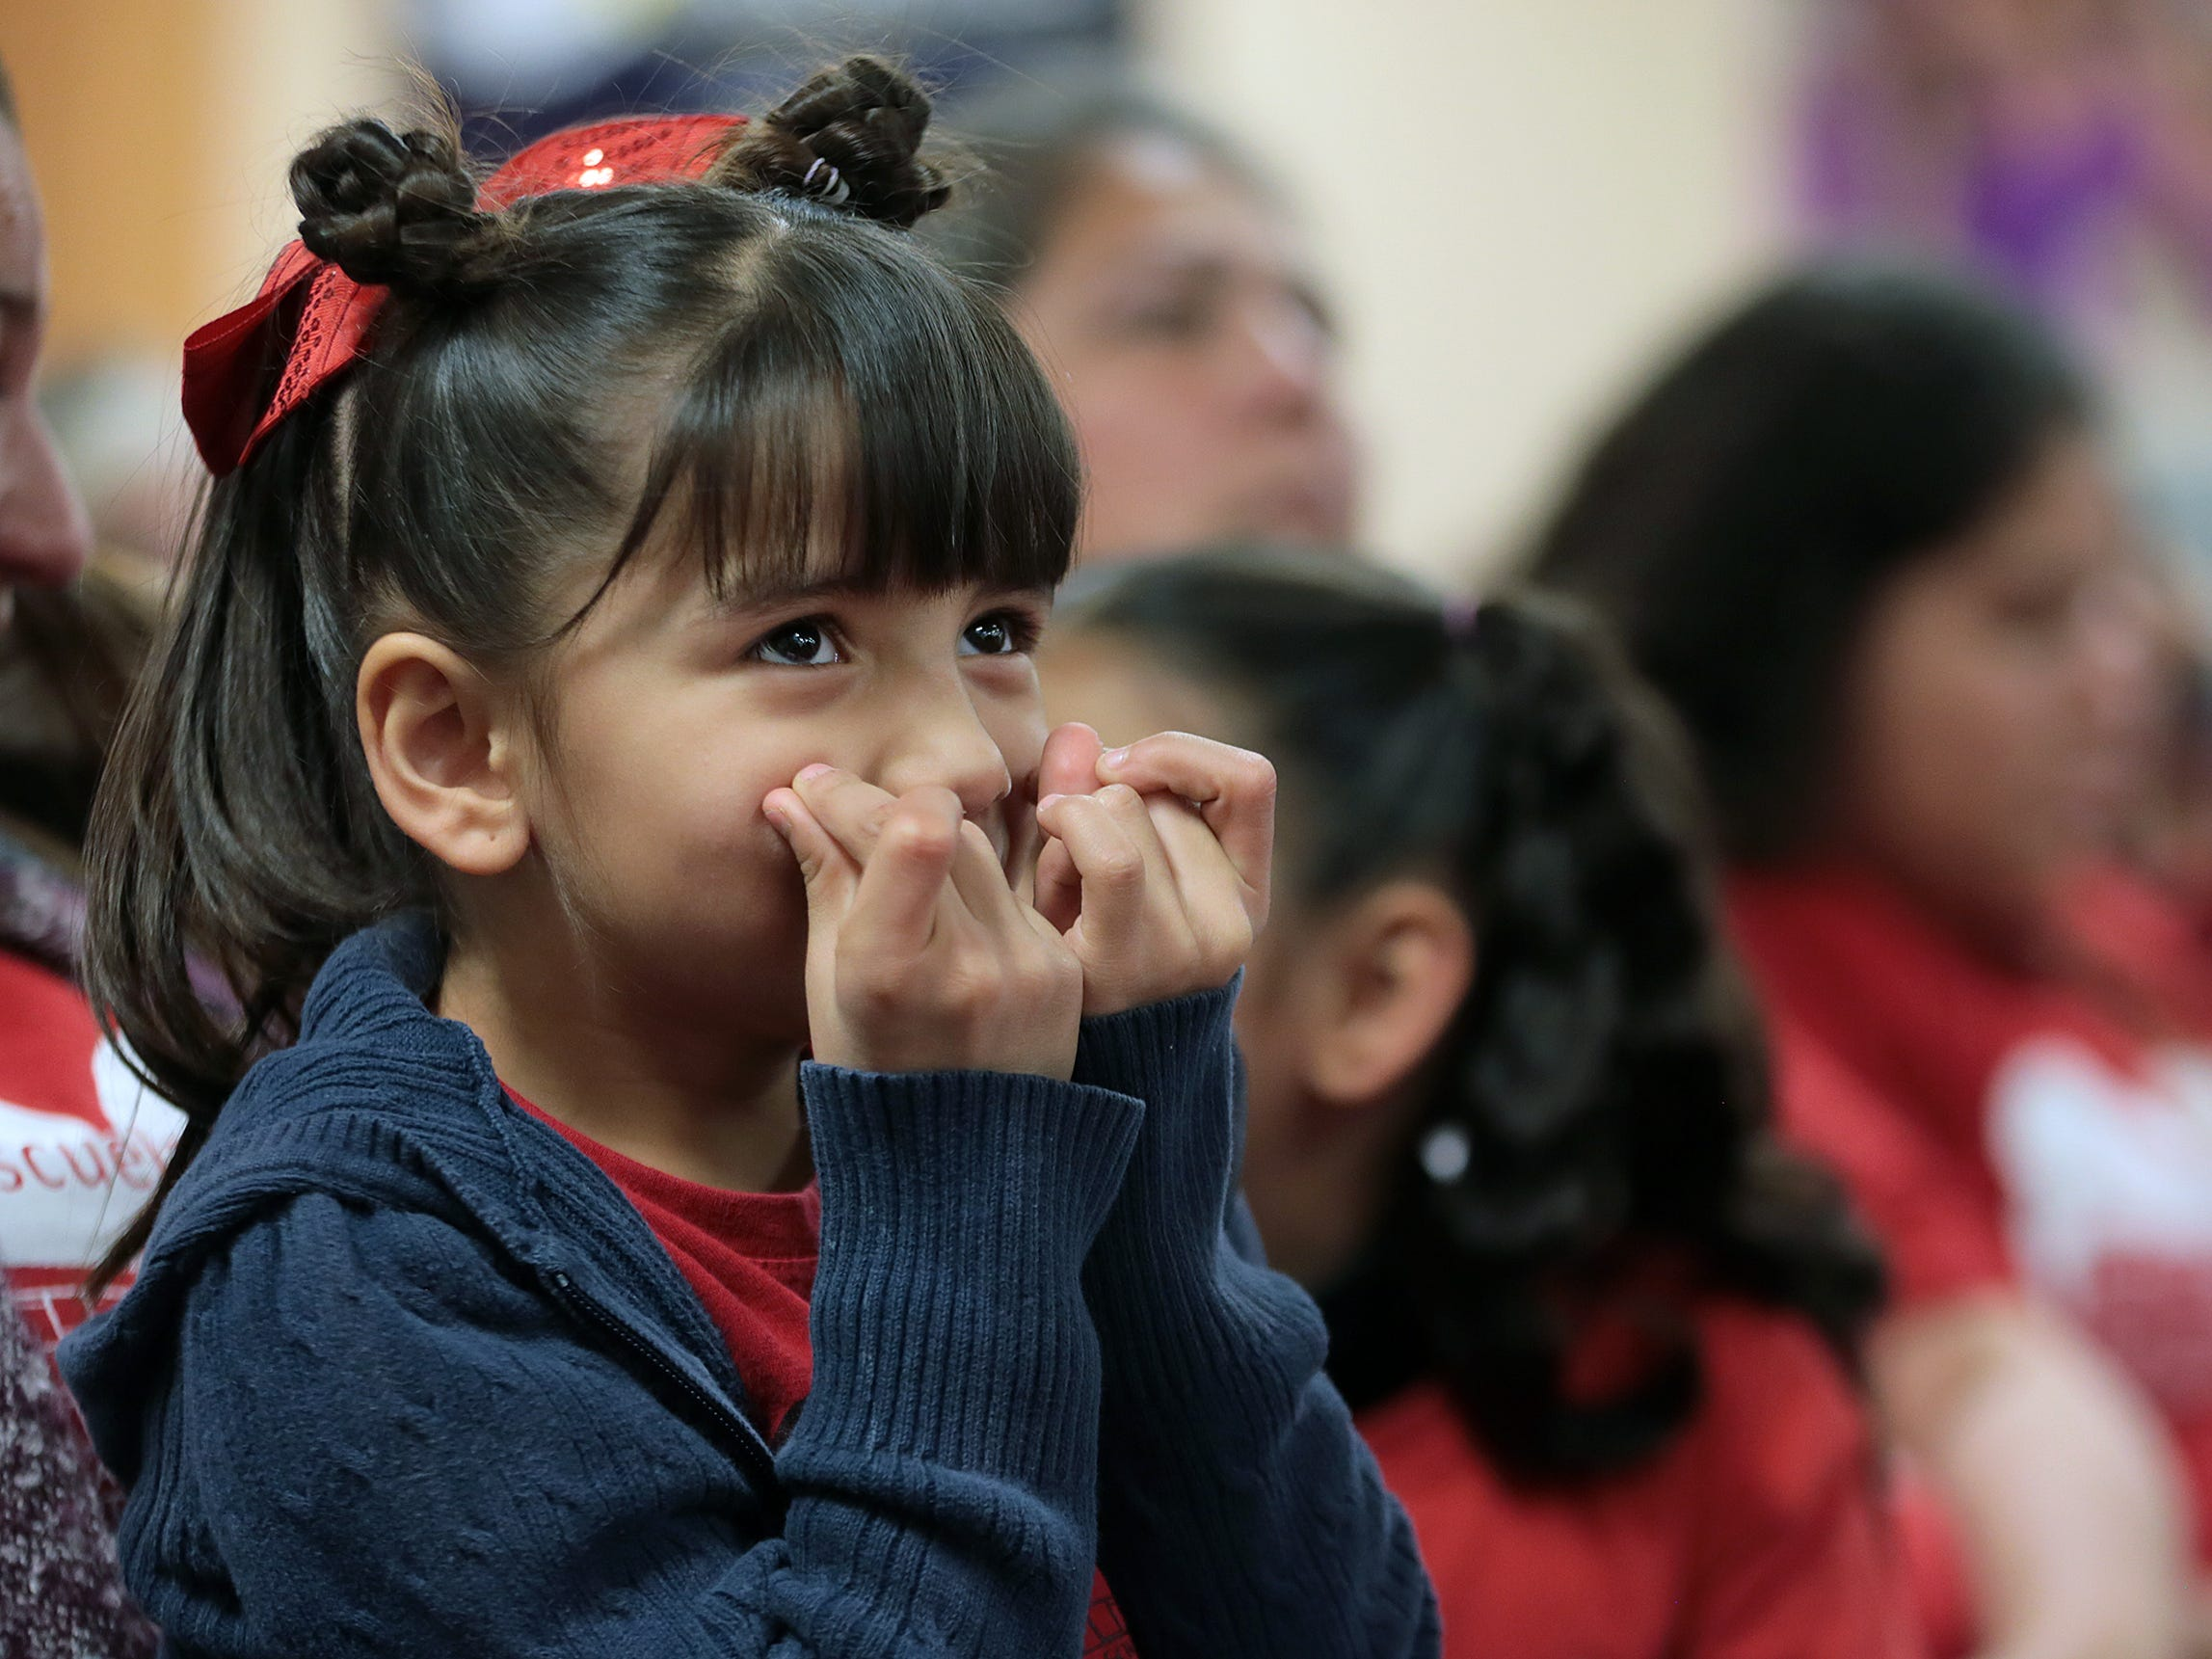 Beall Elementary School kindergarten student Keyreth Arias, 5, crosses her fingers as EPISD board members prepare to vote on closing her school Tuesday. The board voted to close Beall, Burleson, Alta Vista and Schuster.